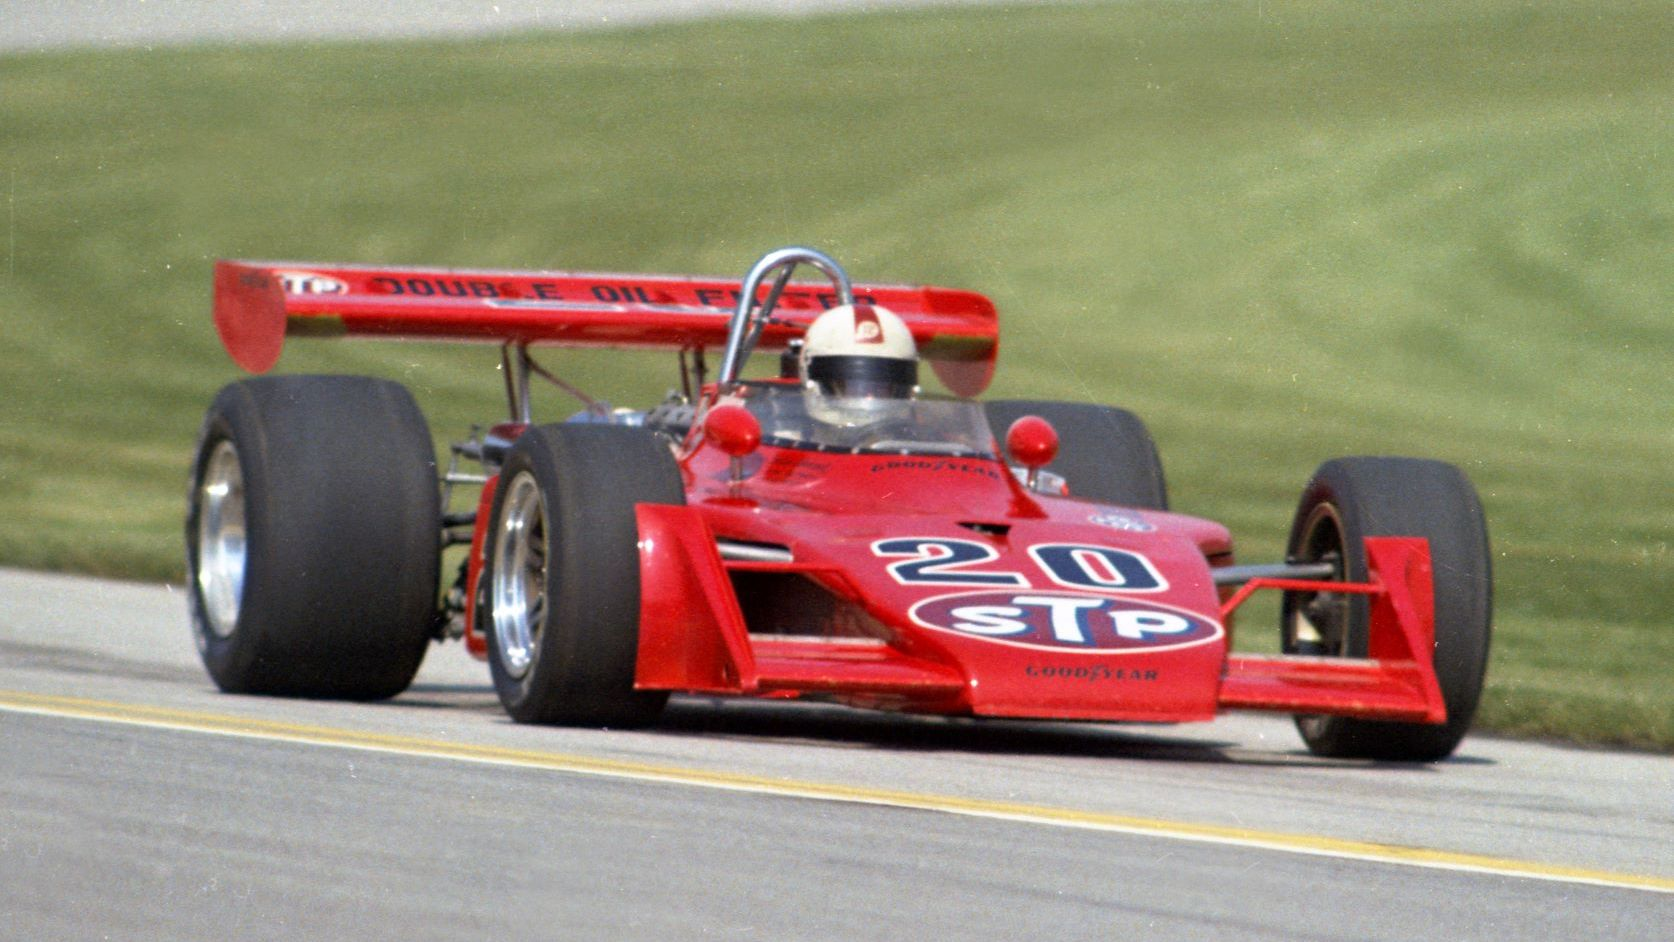 The 1973 Eagle driven by Gordon Johncock at the Indy 500.